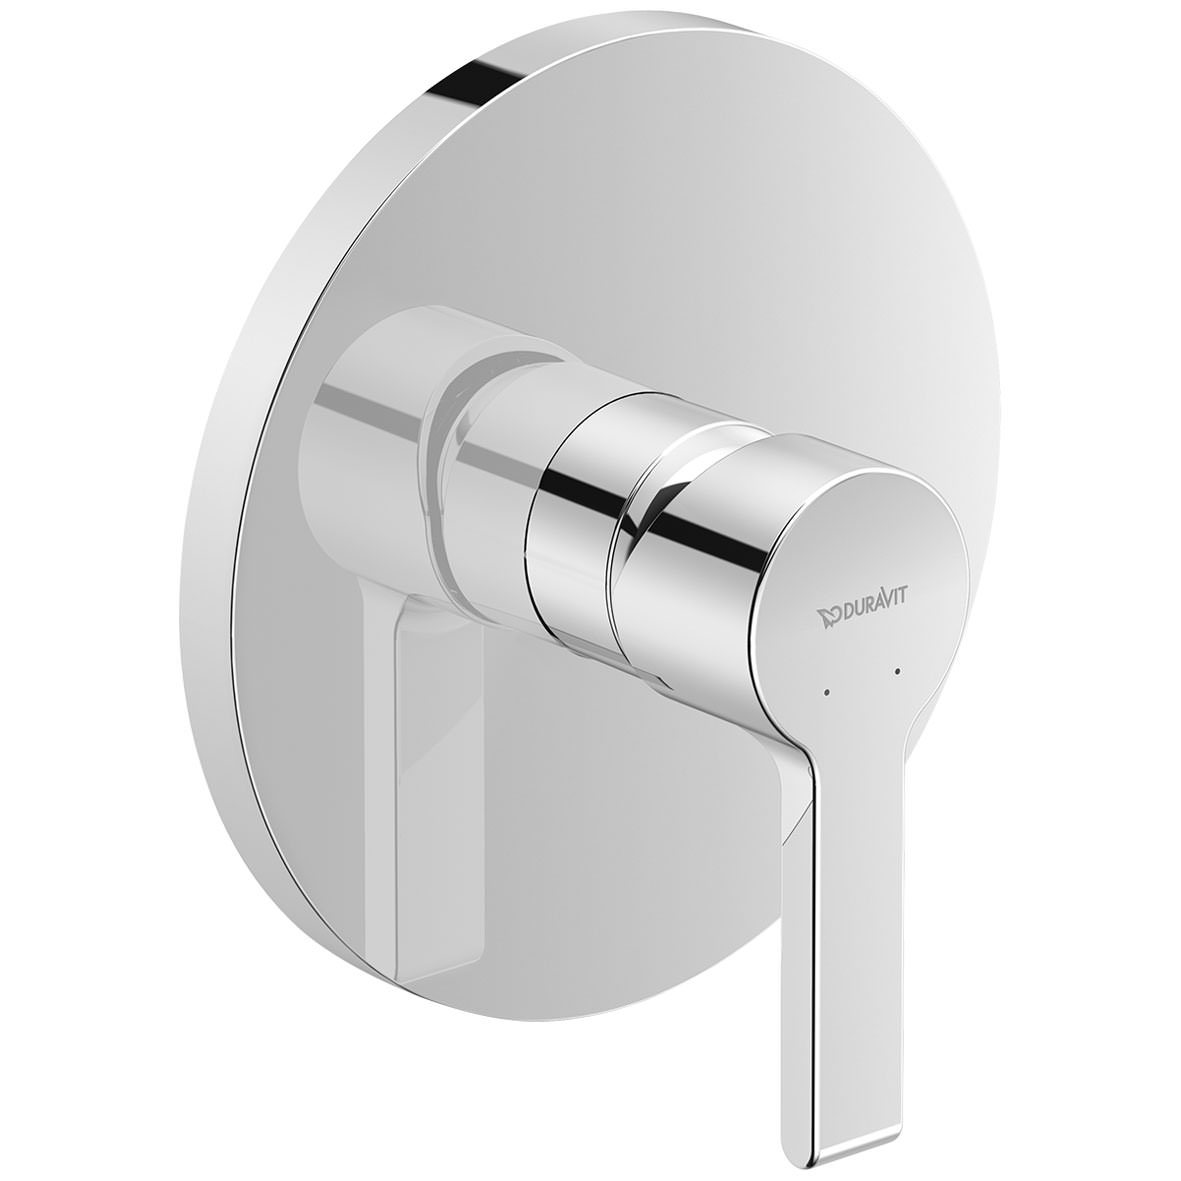 Duravit B.2 Round Concealed Manual Shower Mixer Valve